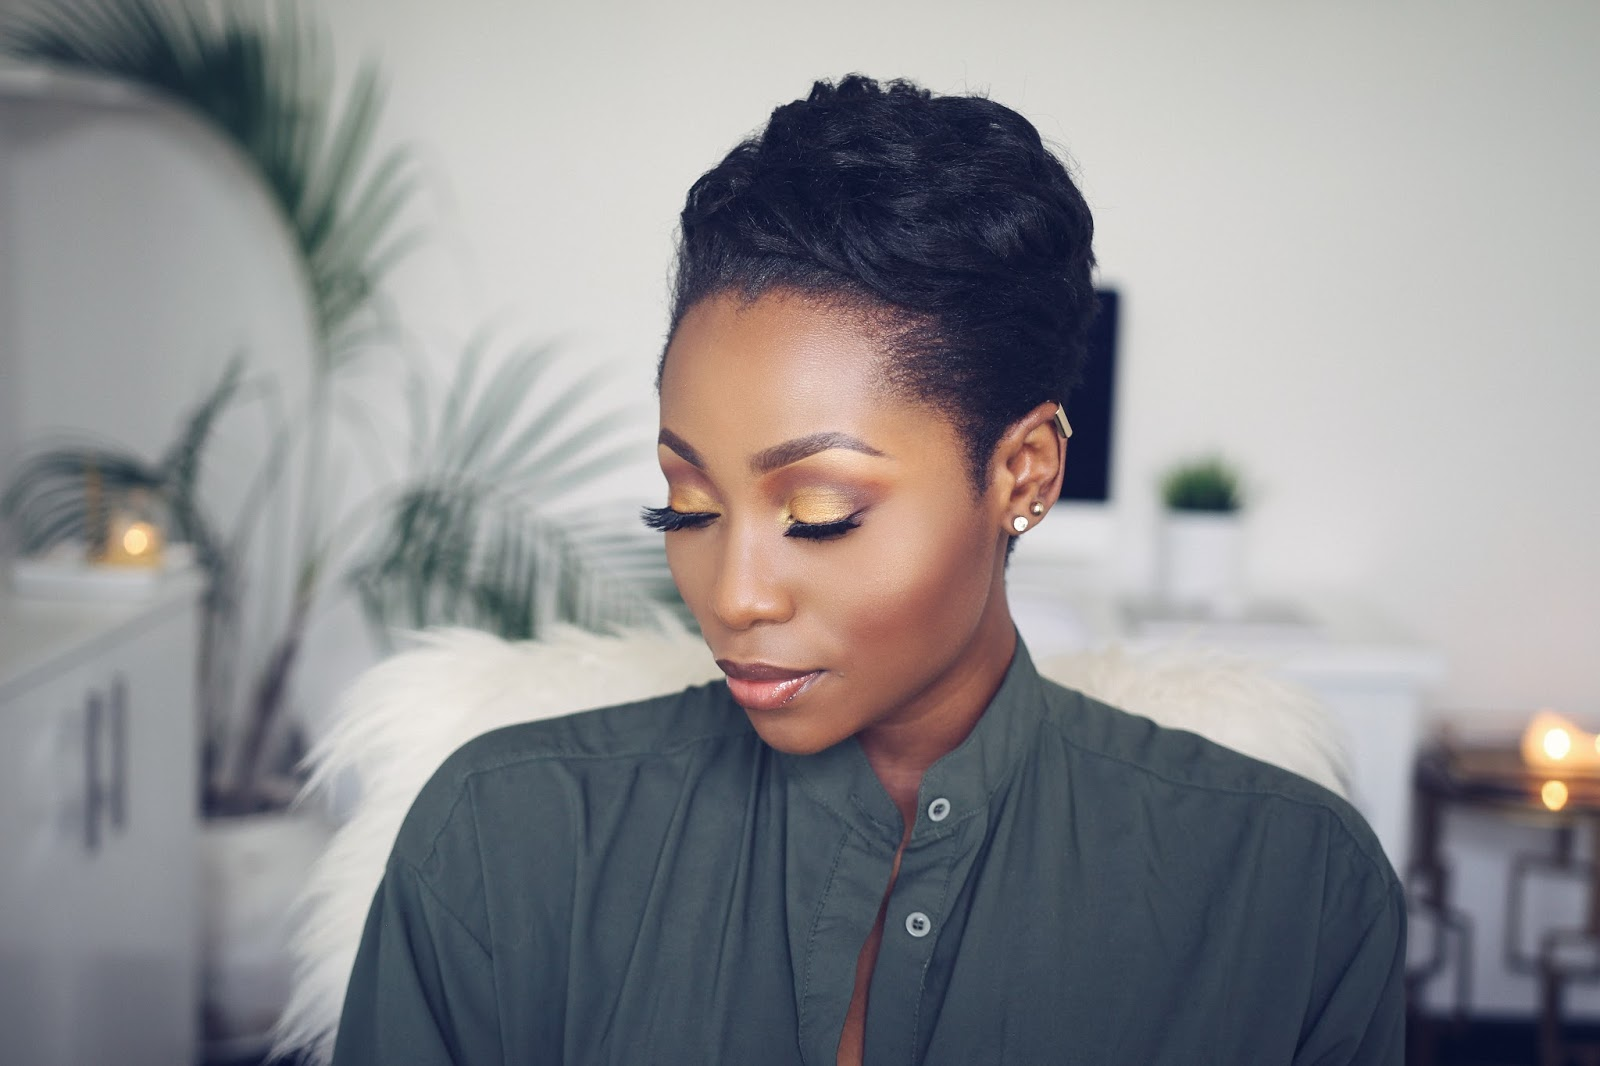 WATCH ME TRANSFORM HOW TO STYLE SHORT RELAXED HAIR FOR BLACK WOMEN ( START  TO FINISH)